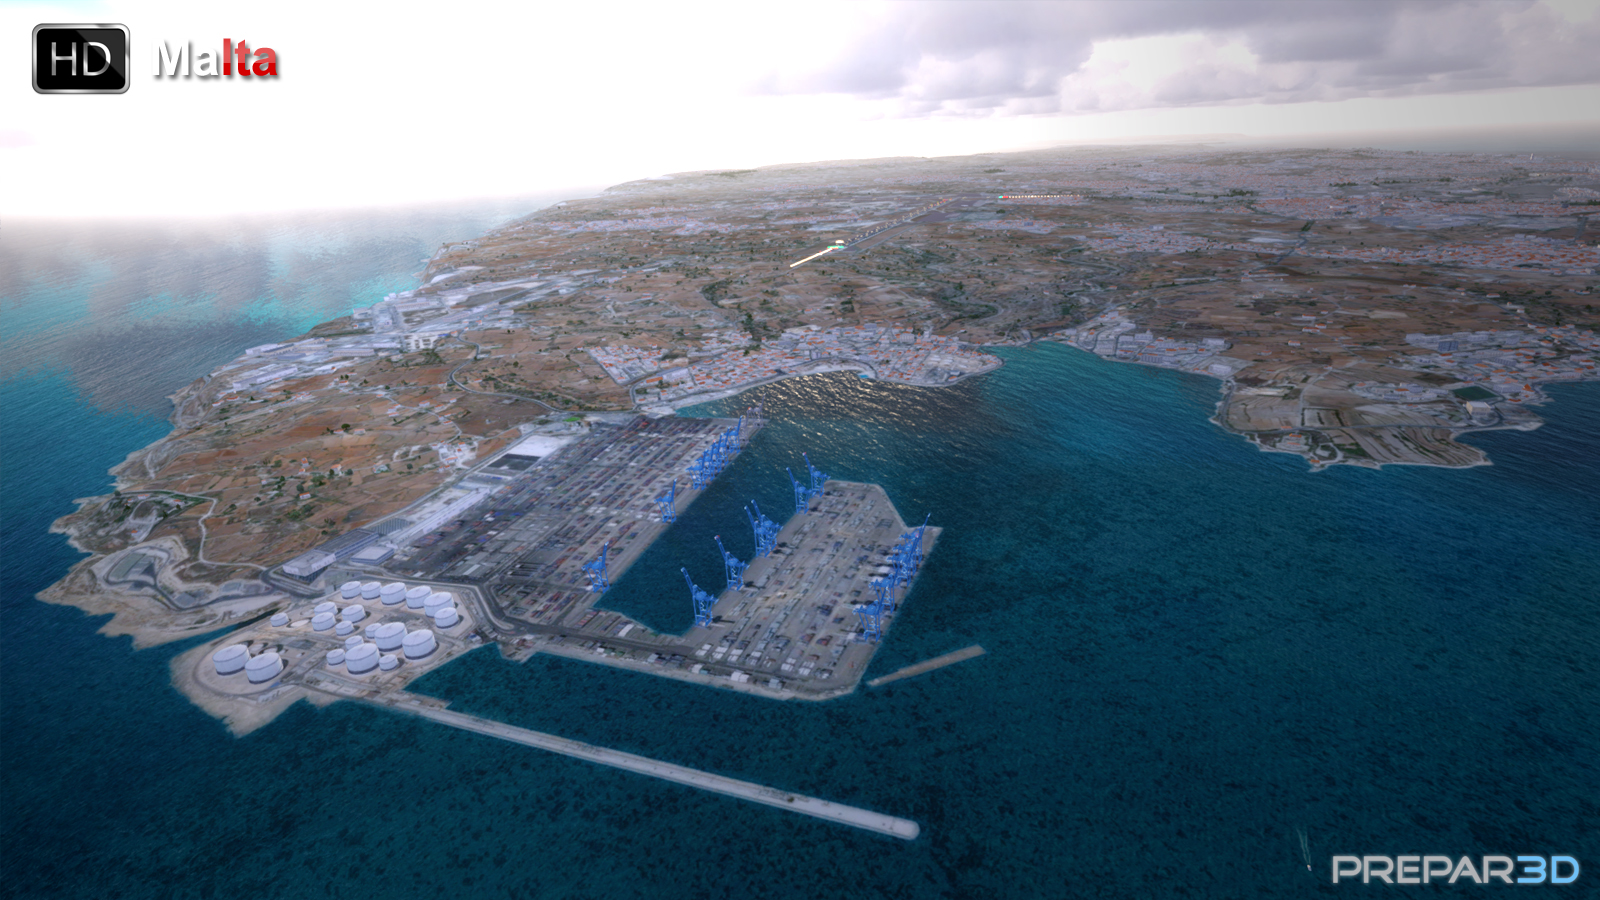 PREALSOFT - HD CITIES - MALTA FSX P3D